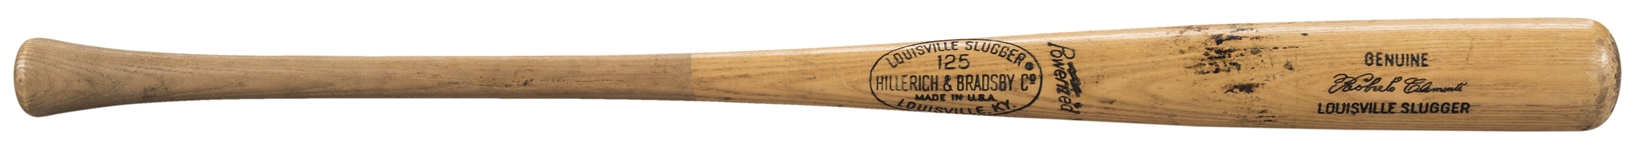 1973-1975 Roberto Clemente Last Ordered Hillerich & Bradsby C276 Model Bat Signed By 14 Hall Of Famers (PSA/DNA & Beckett)